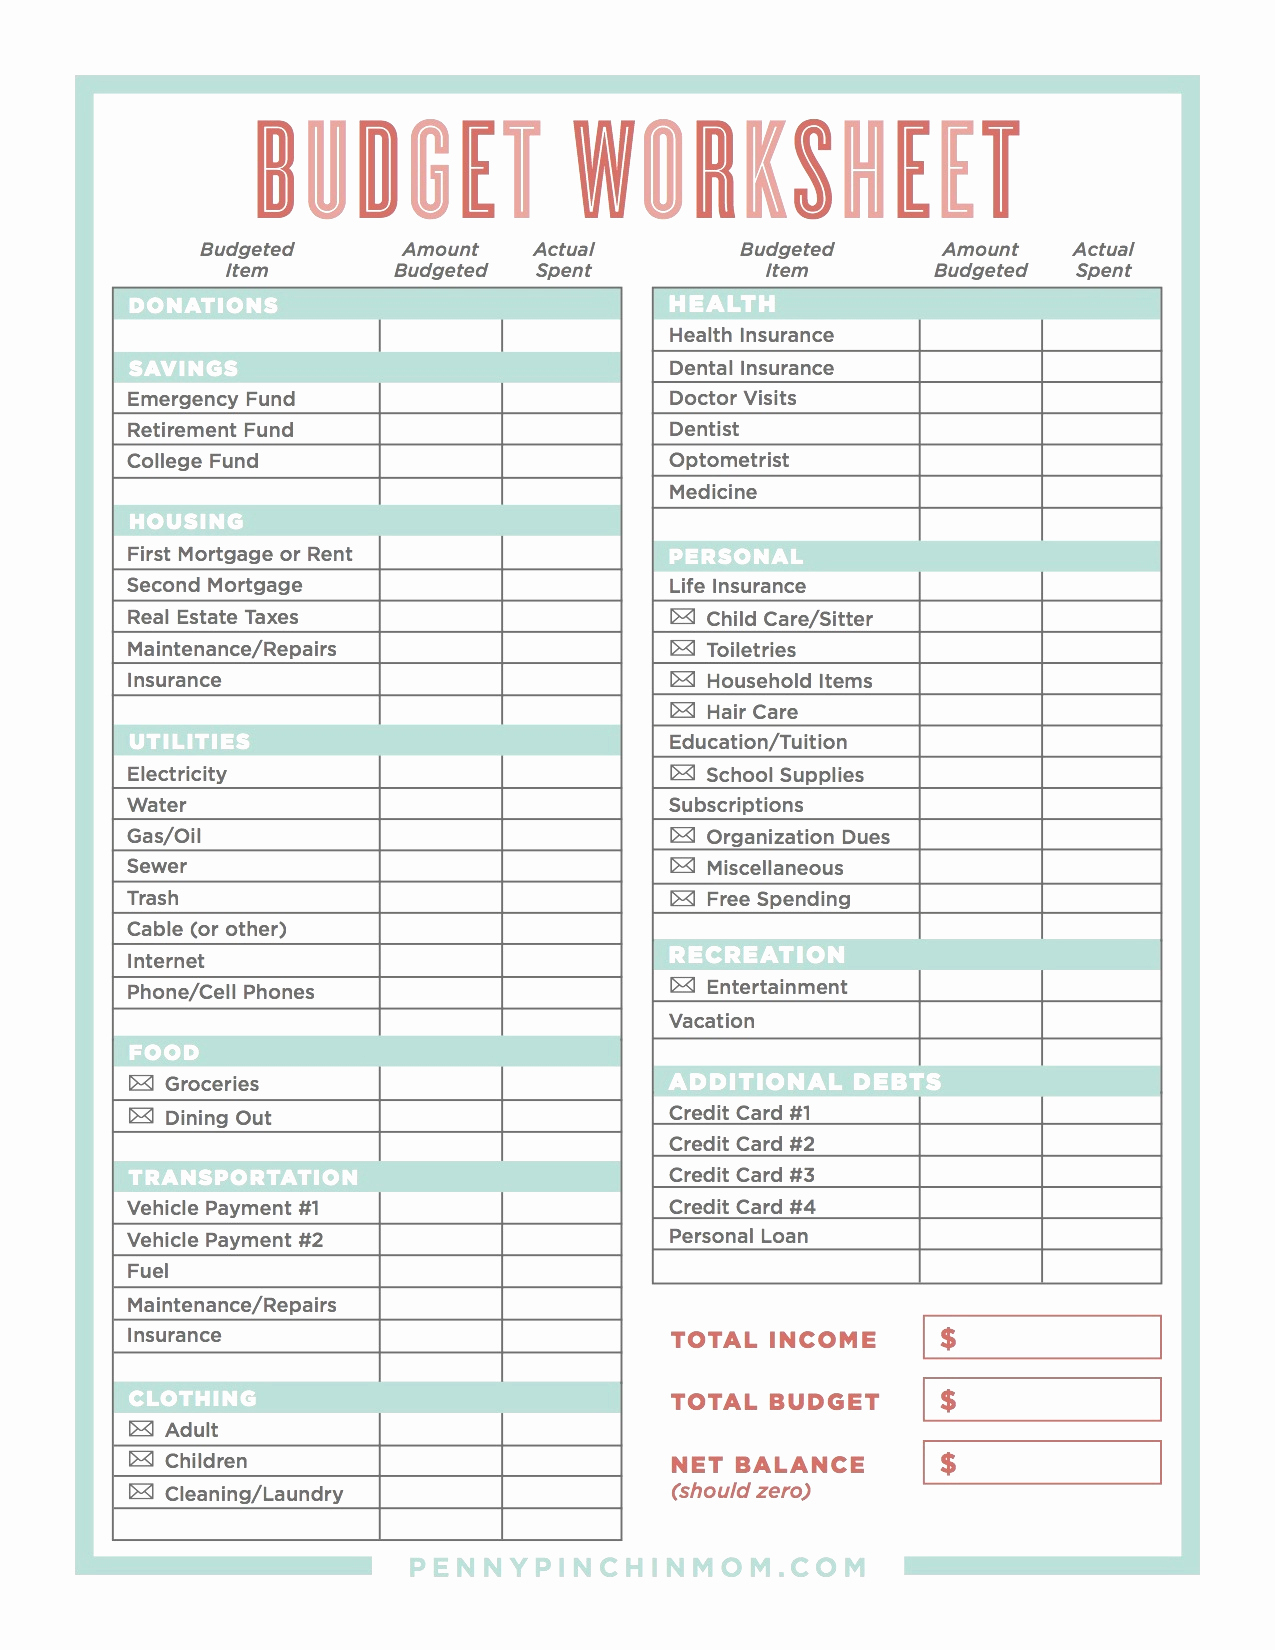 How Do I Make A Budget Spreadsheet In How Do I Make Budget Spreadsheet To Create In Google Docs You On